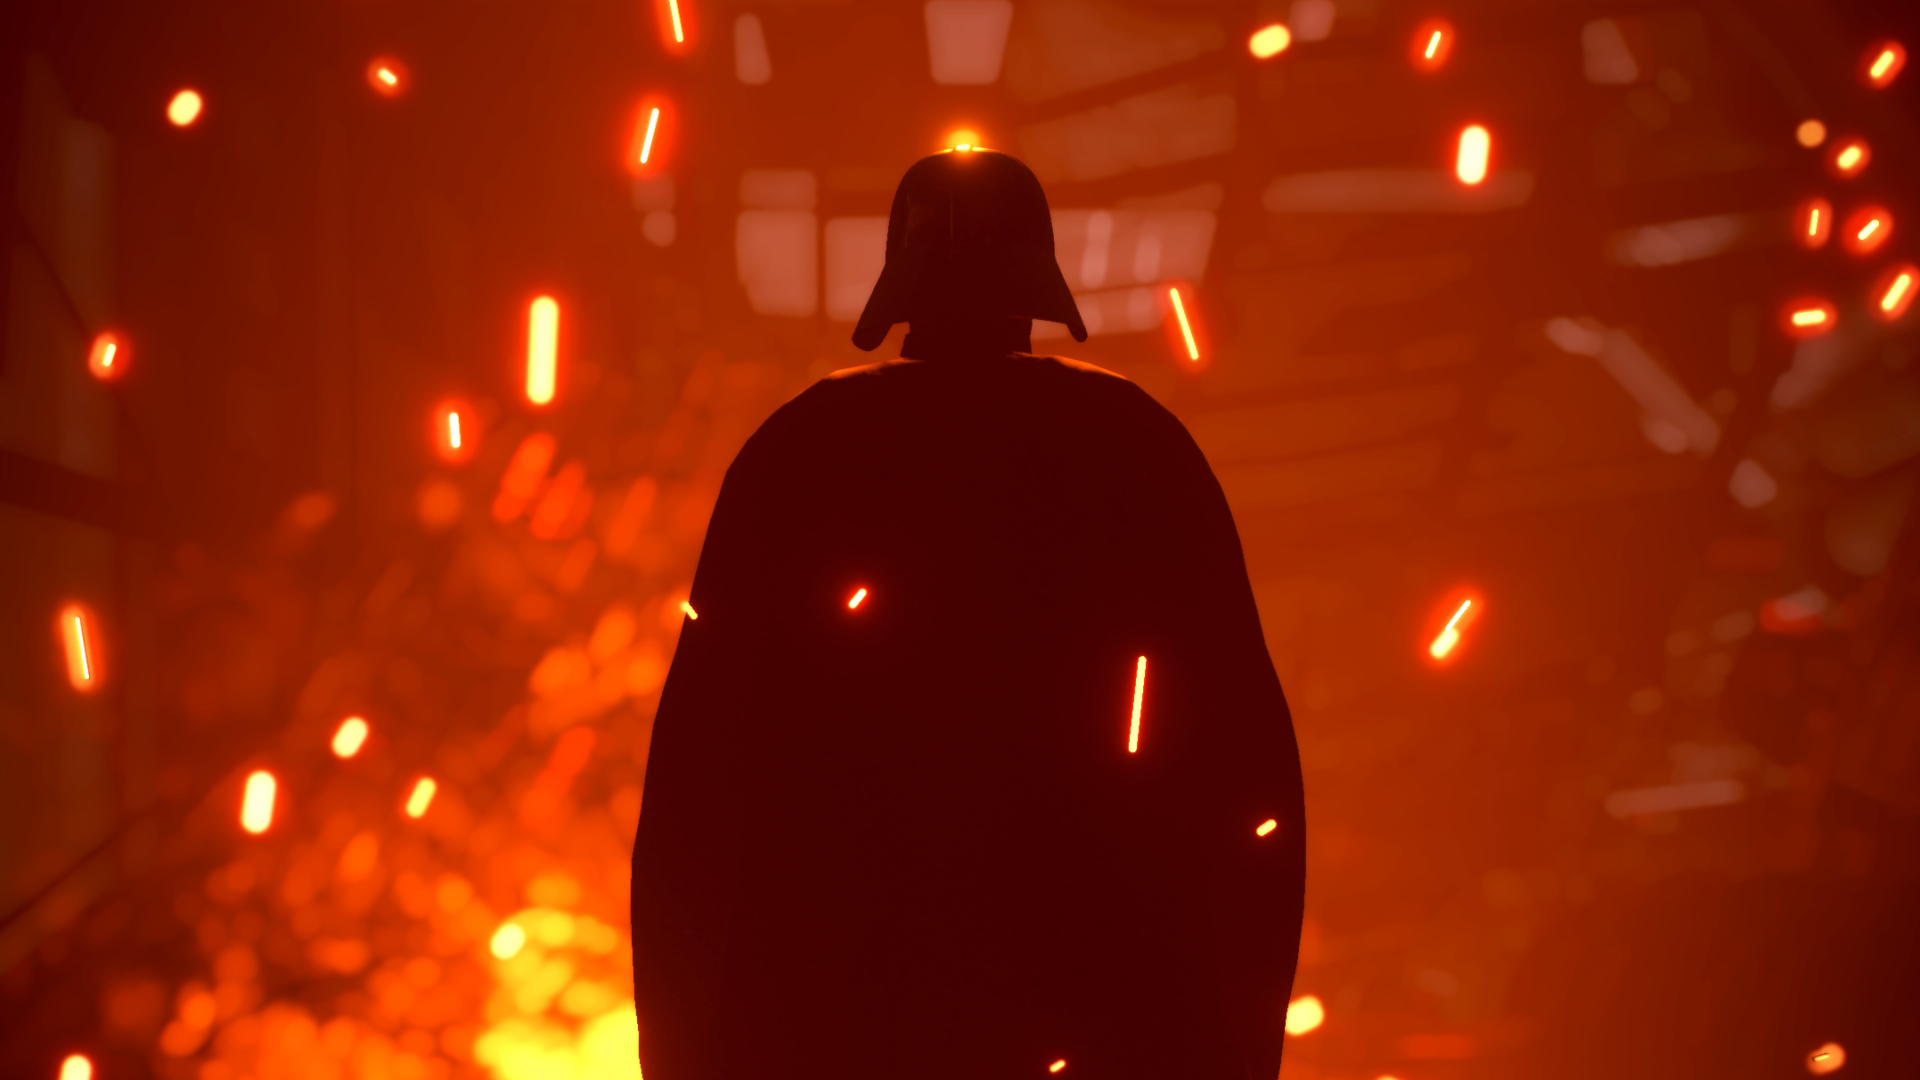 1920x1080 Darth Vader 1080p Laptop Full Hd Wallpaper Hd Movies 4k Wallpapers Images Photos And Background